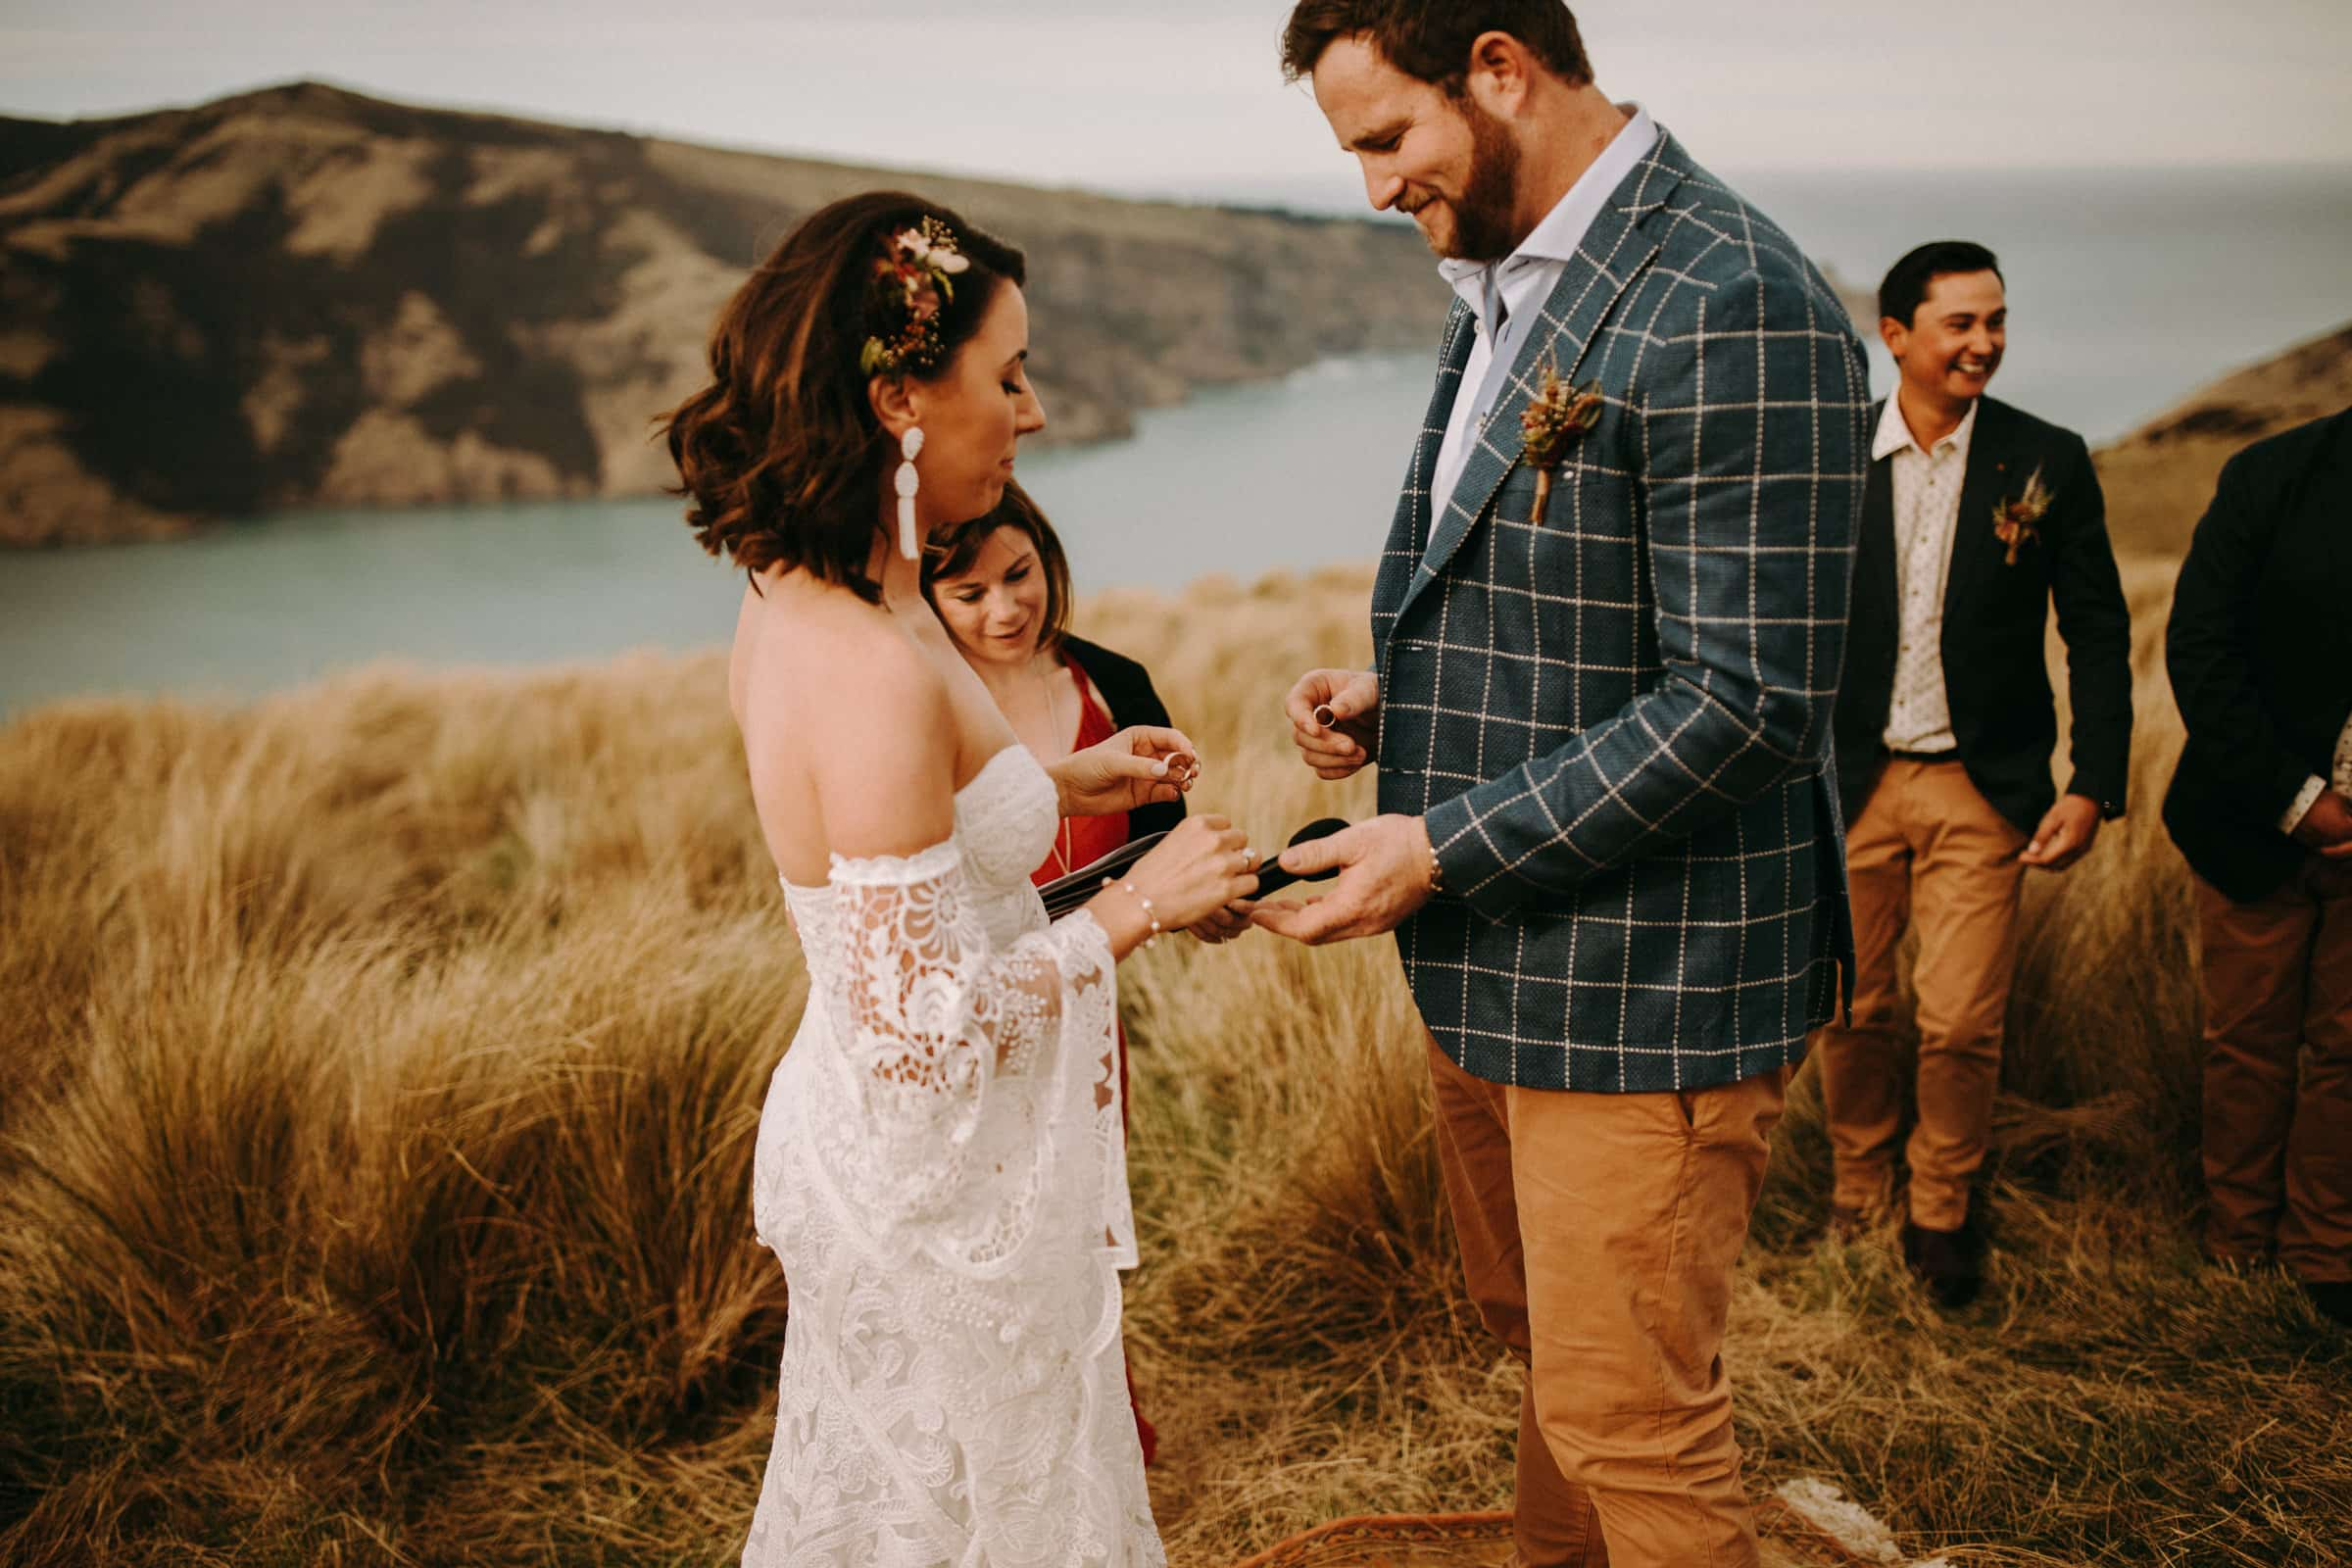 A wedding couple is exchanging wedding rings.